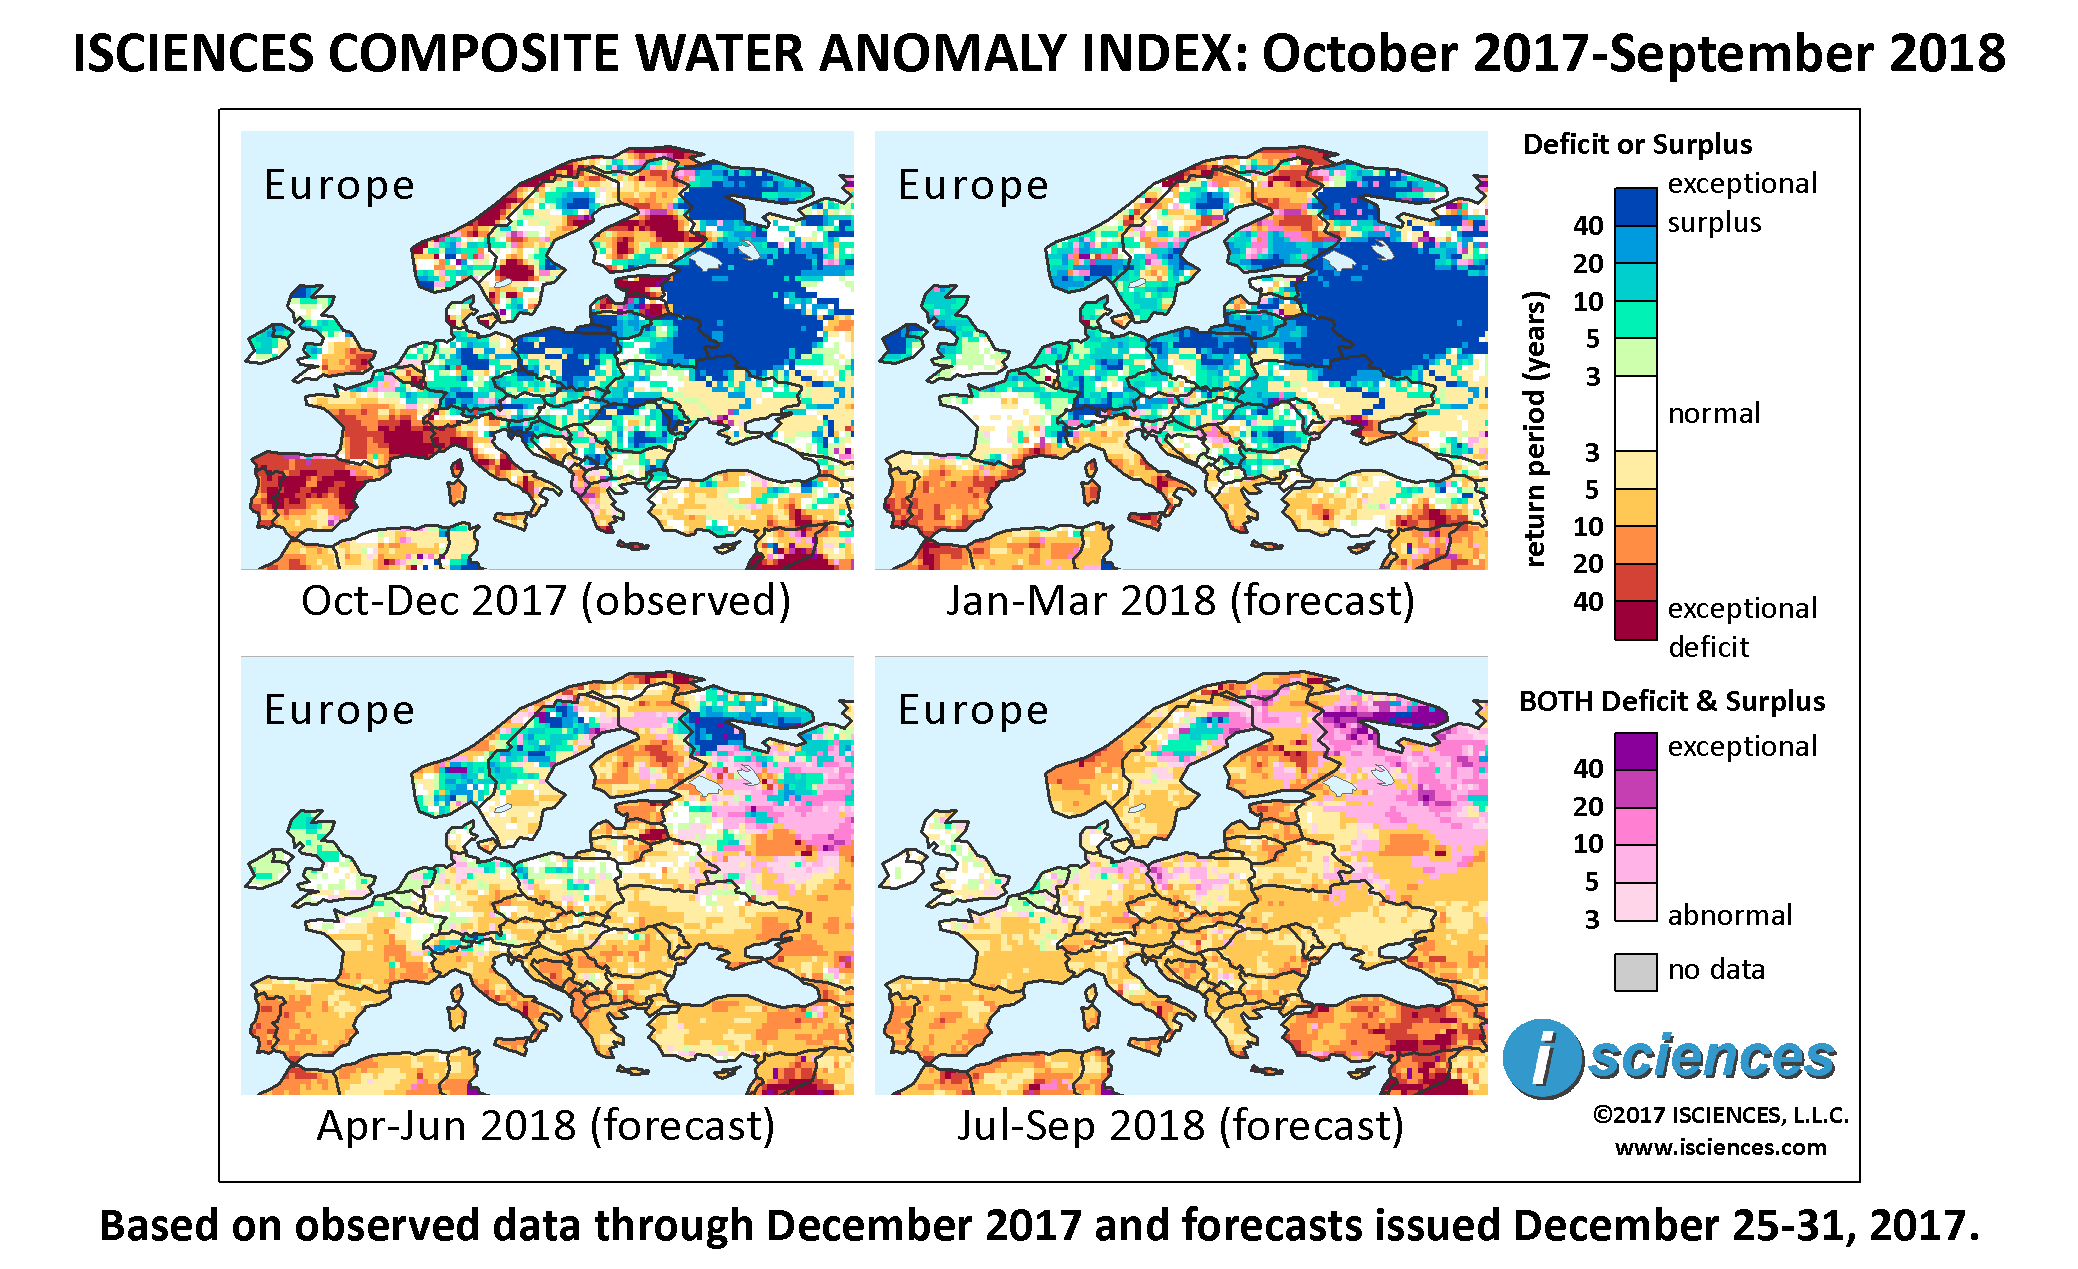 ISciences_Europe_R201712_3mo_quad_pic.png